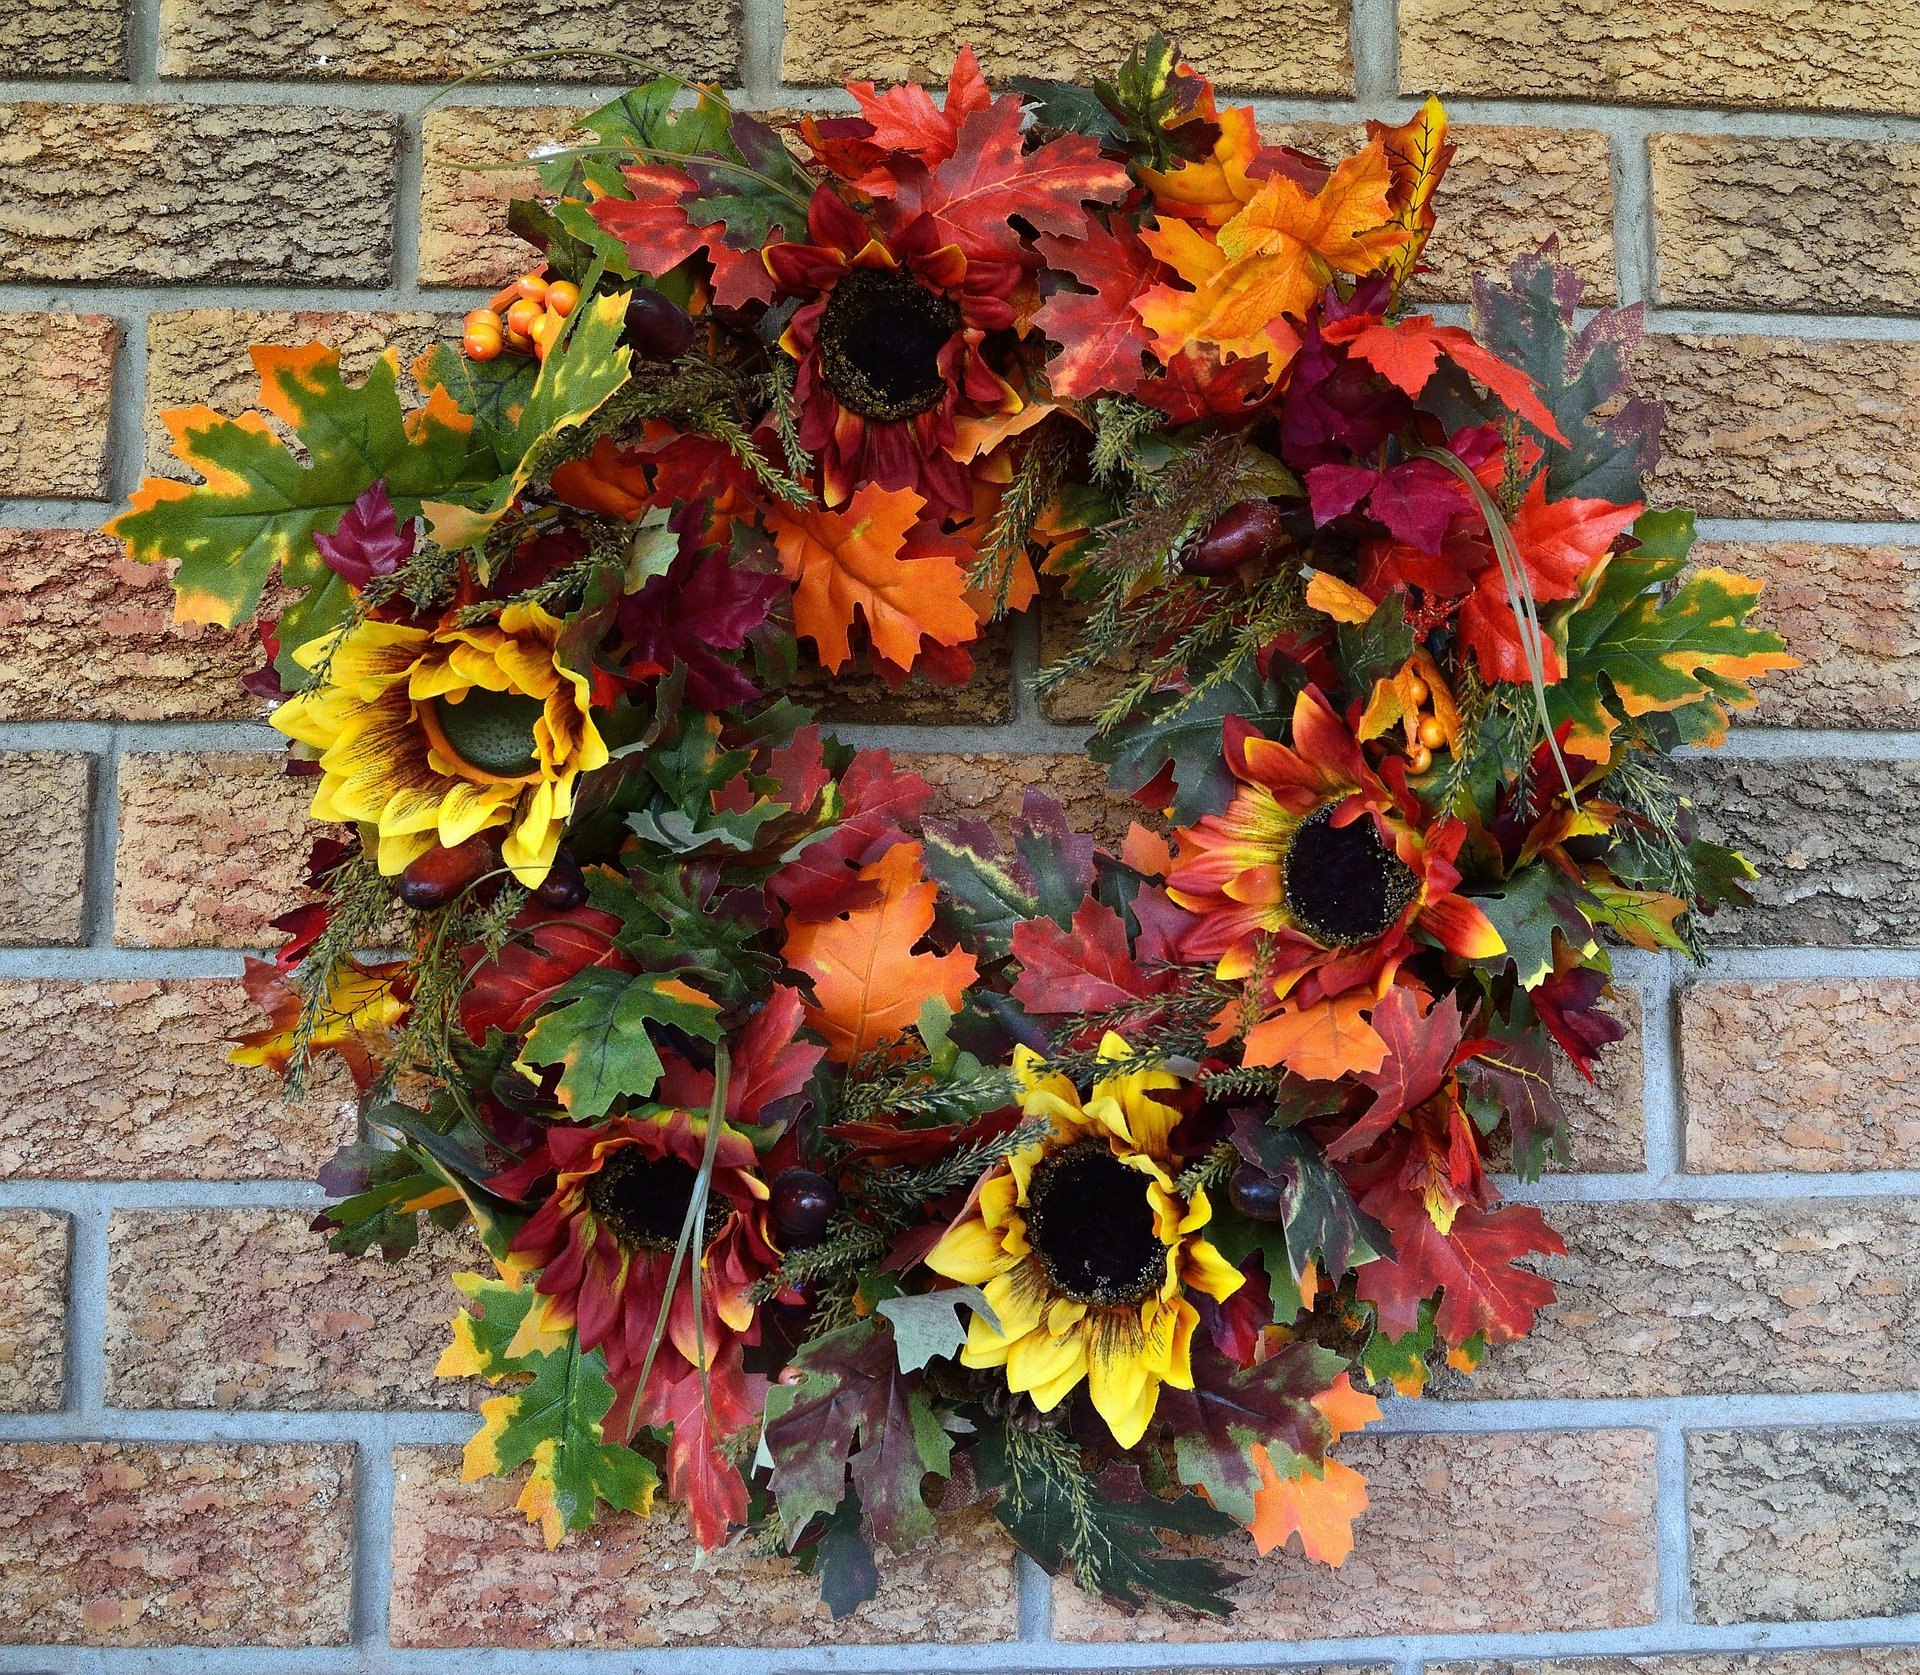 Wreaths are super easy to make and instantly dress up a door!